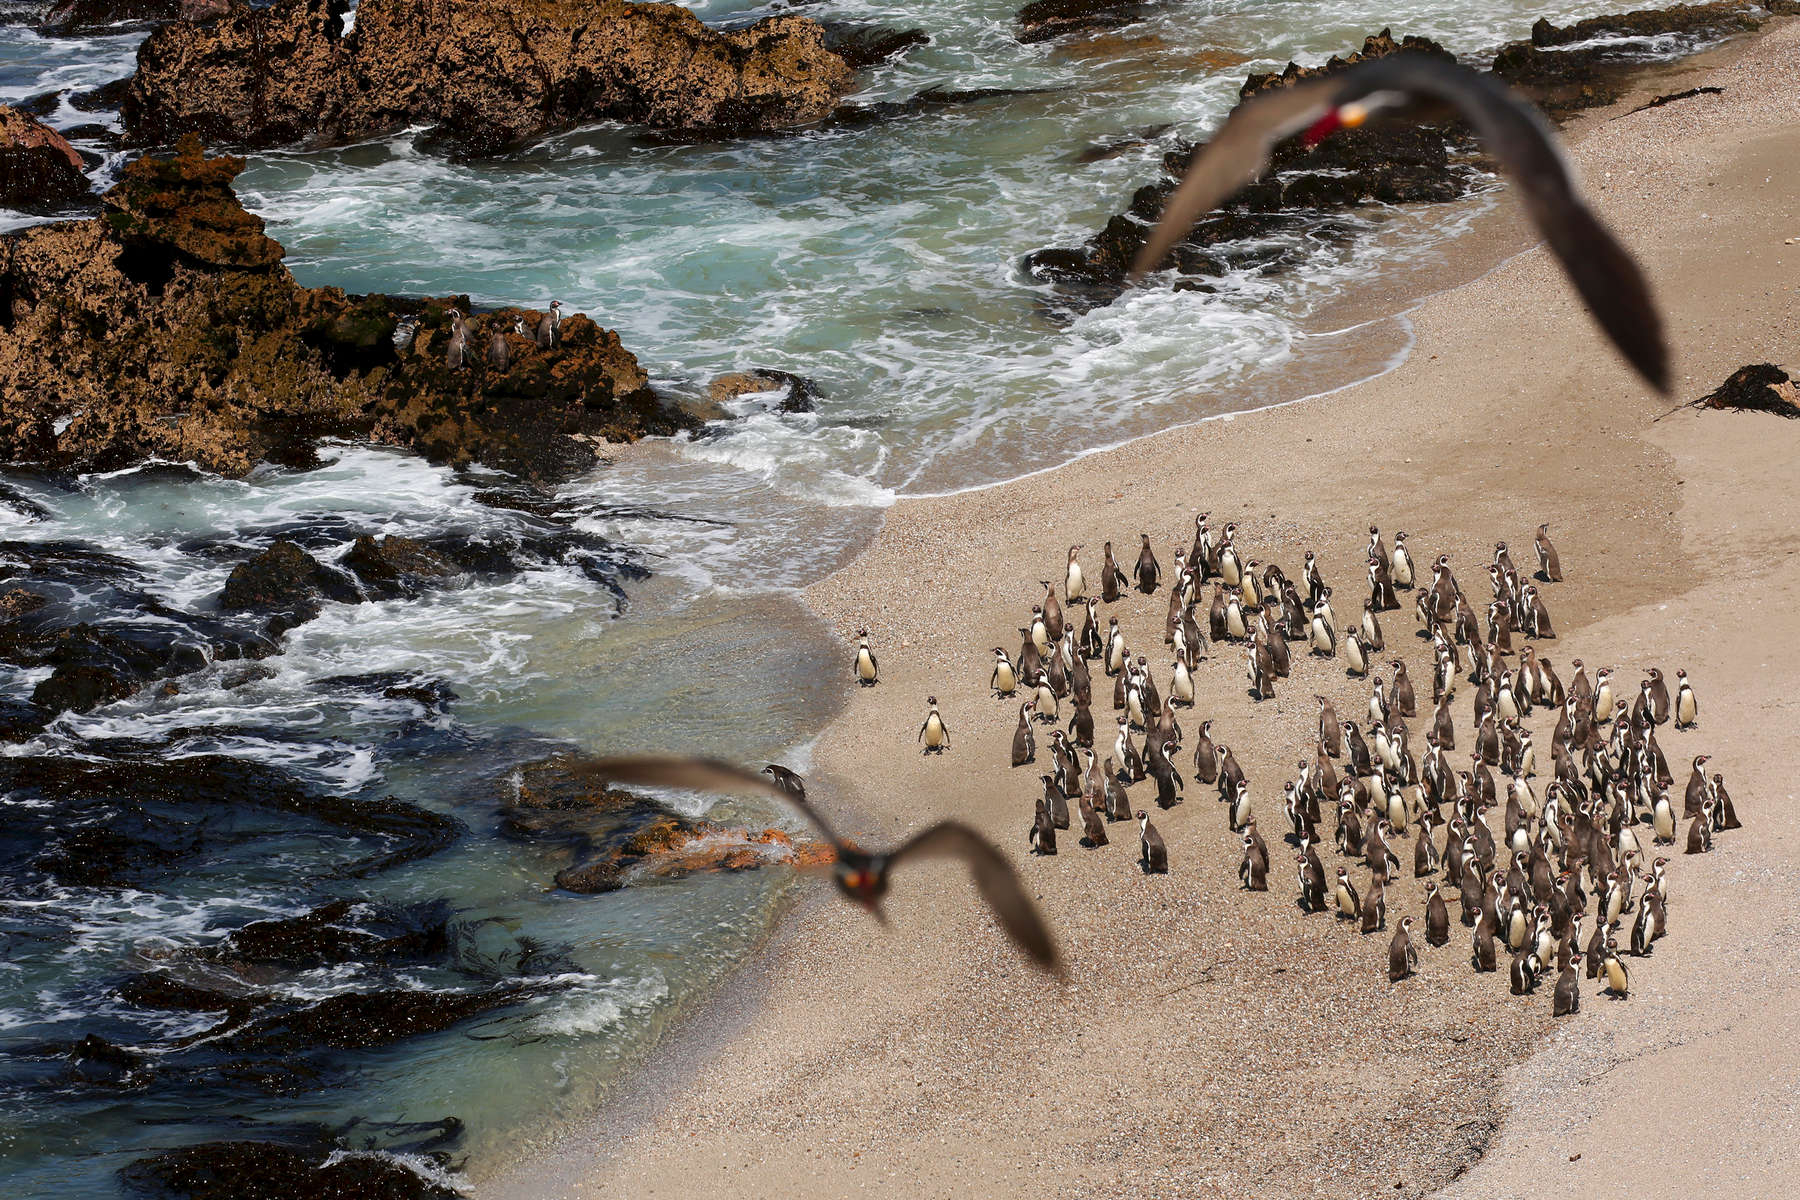 A group of Humboldt penguins stand on the beach together at the Punta San Juan coastal reserve. About 6,000 of Peru's 25,000 endangered Humboldt penguins reside at Punta San Juan, where they have been known gather in clusters of 100 or more.